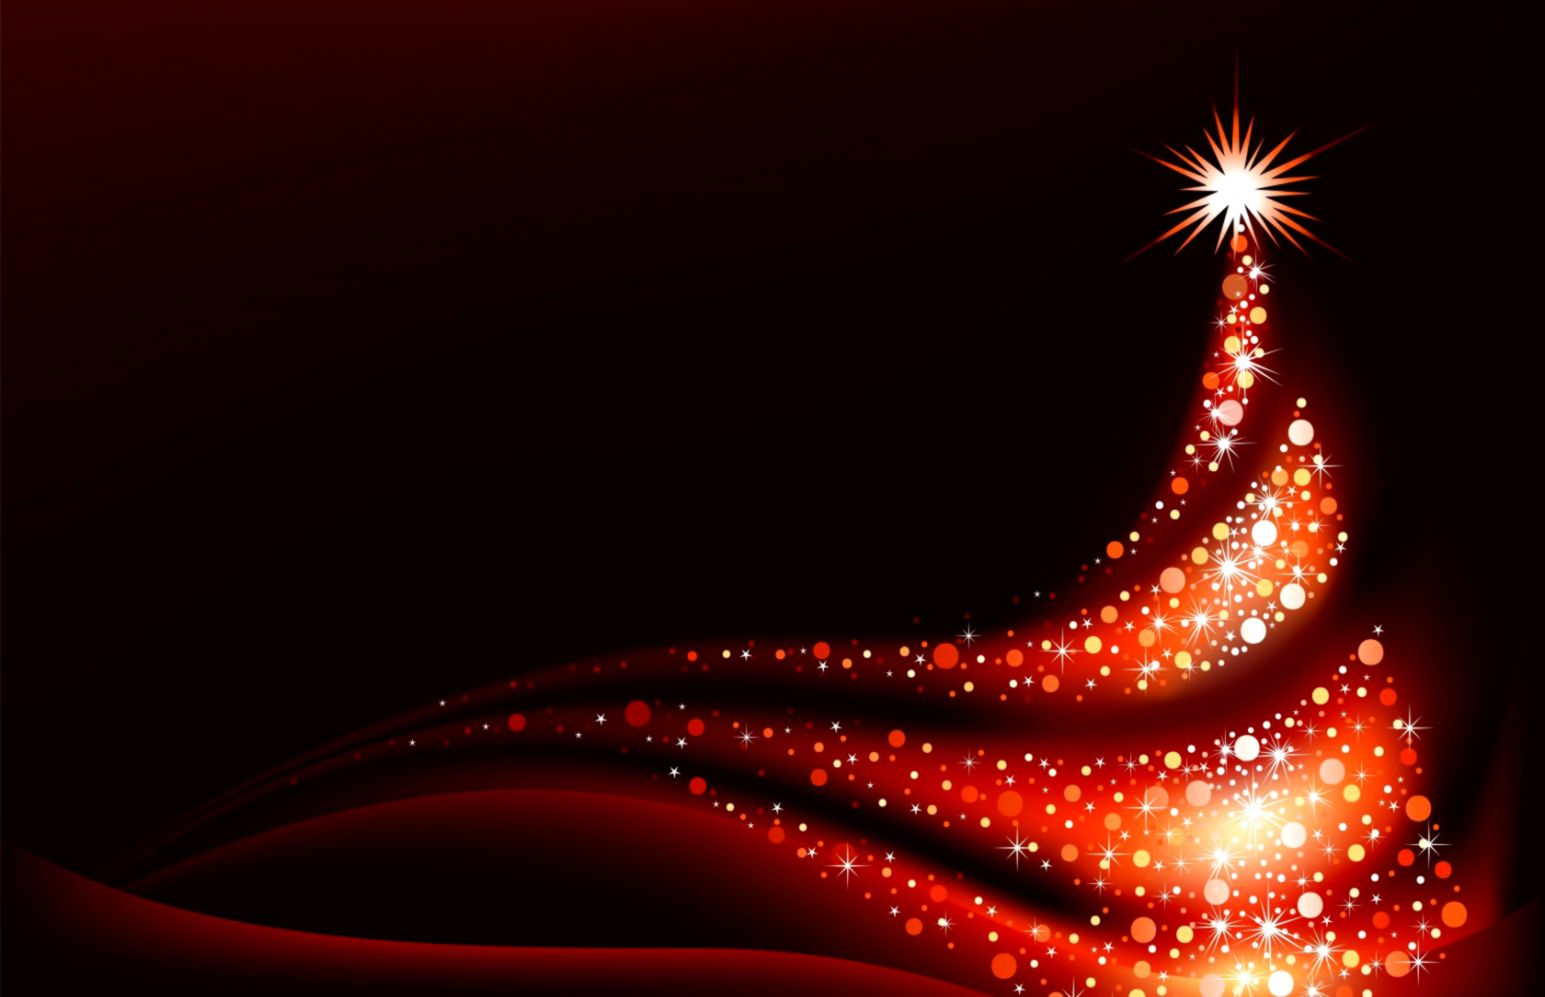 Christmas Background Hd.Christmas Background Best Wallpapers Hd Gallery